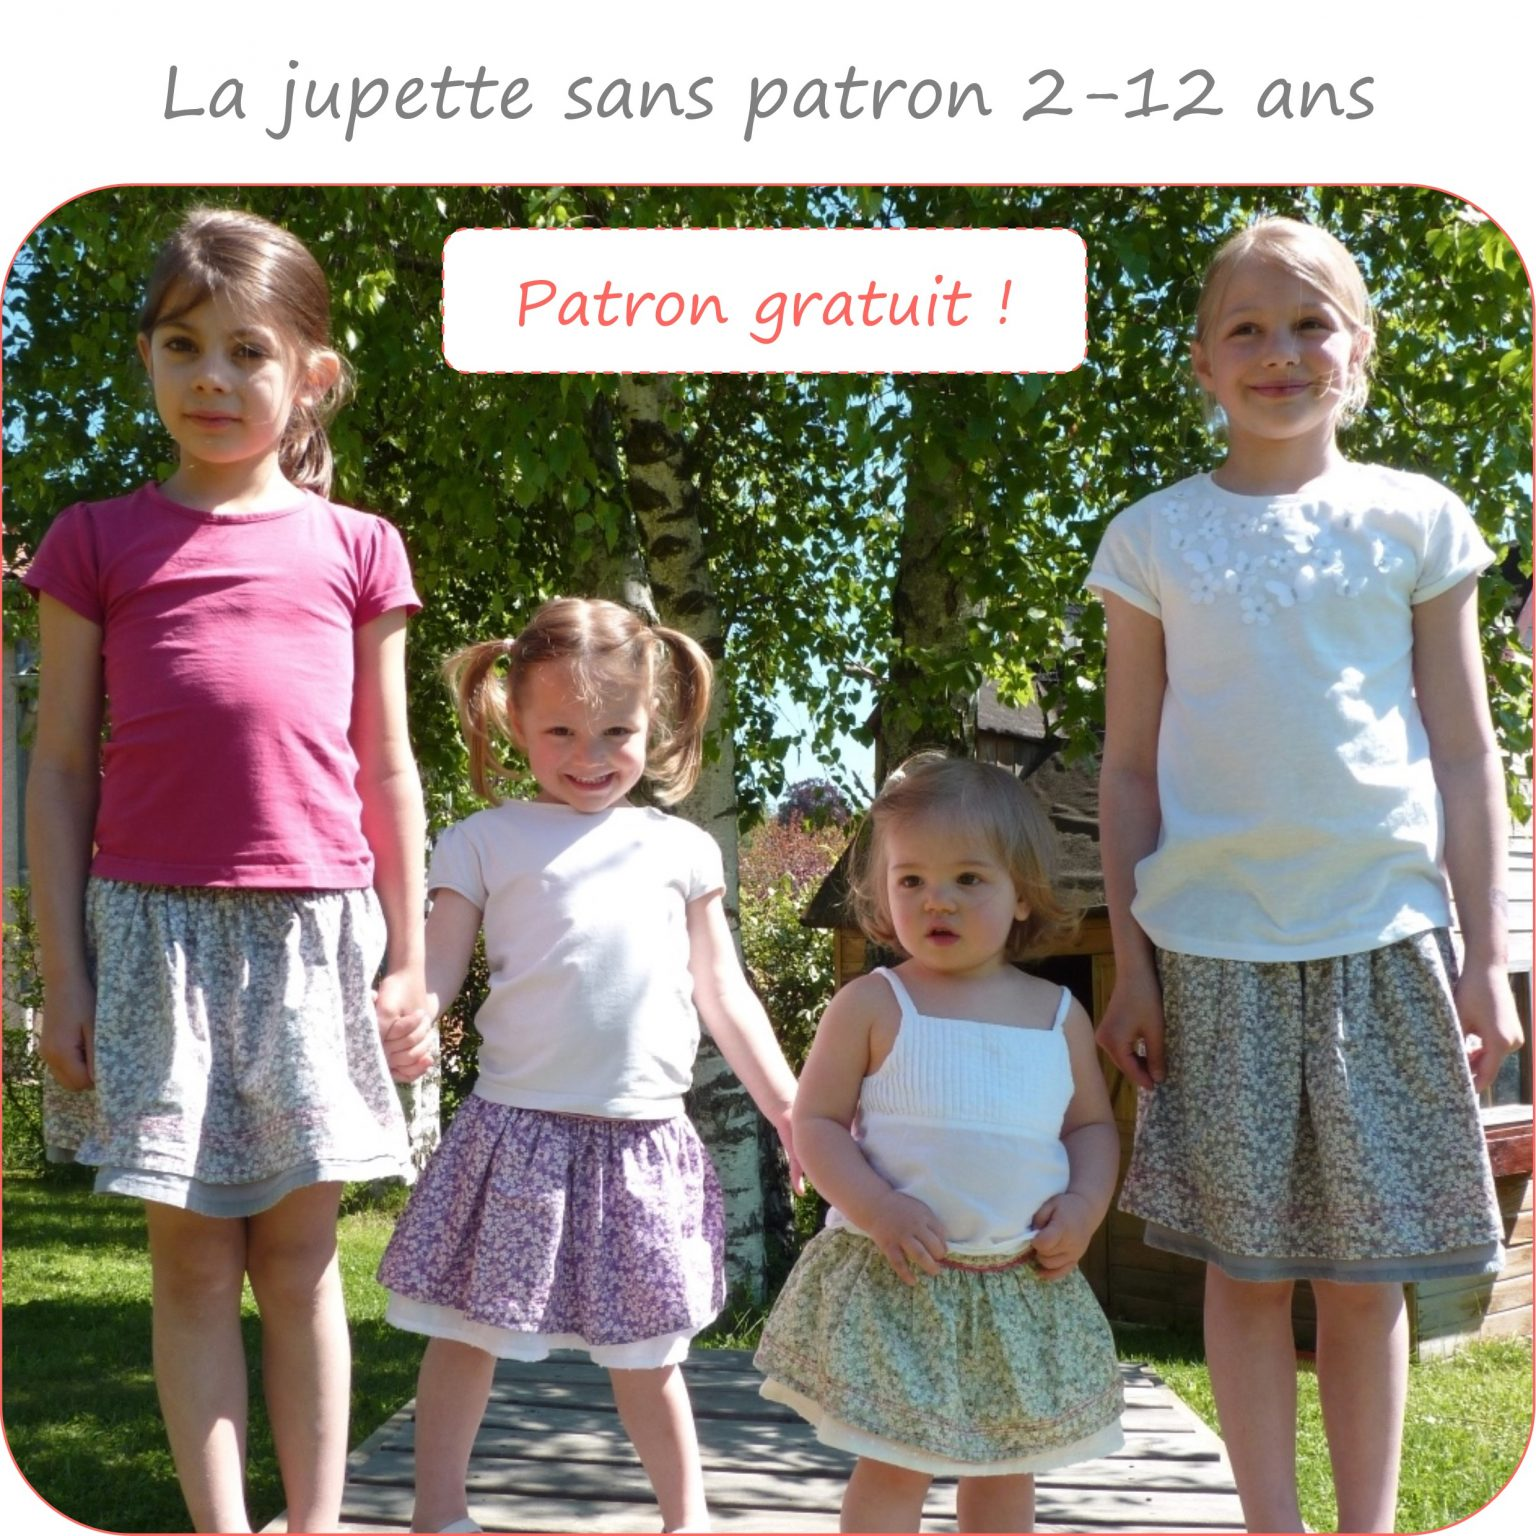 JupetteSansPatron-PresentationSite_PetitsDom